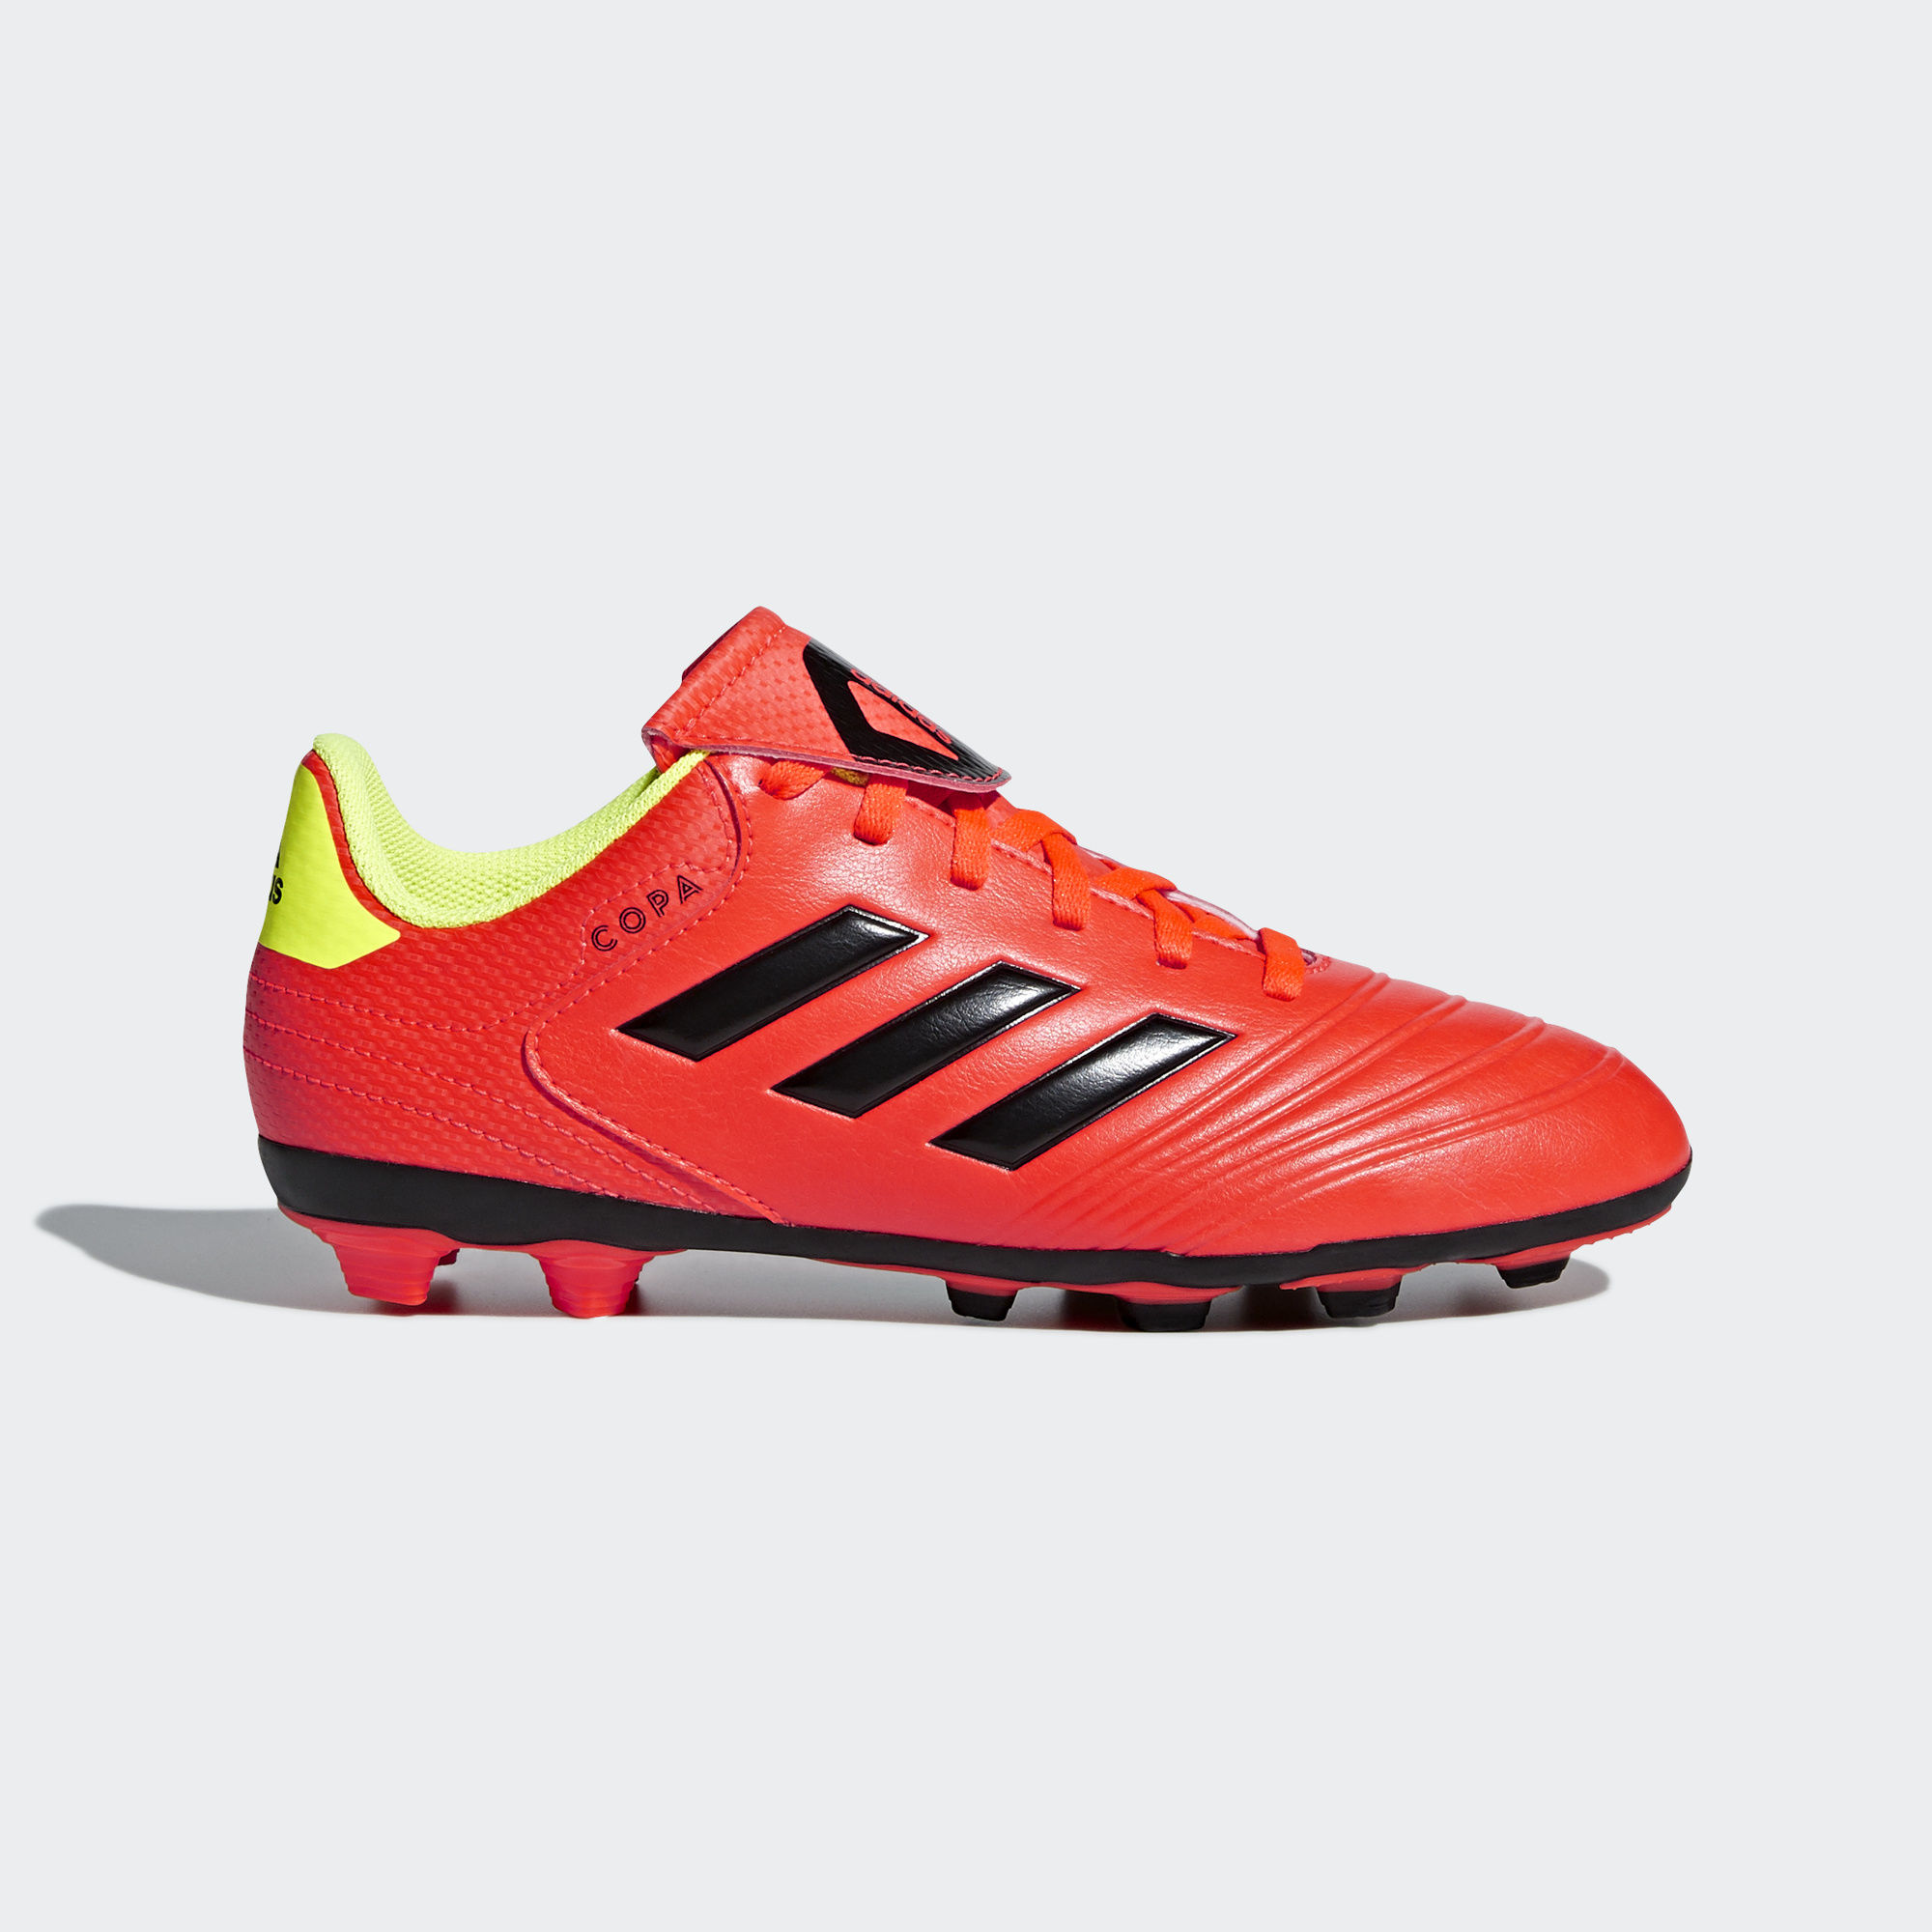 787a4787d adidas Copa 18.4 FXG Jr - Red Yellow - Energy Mode